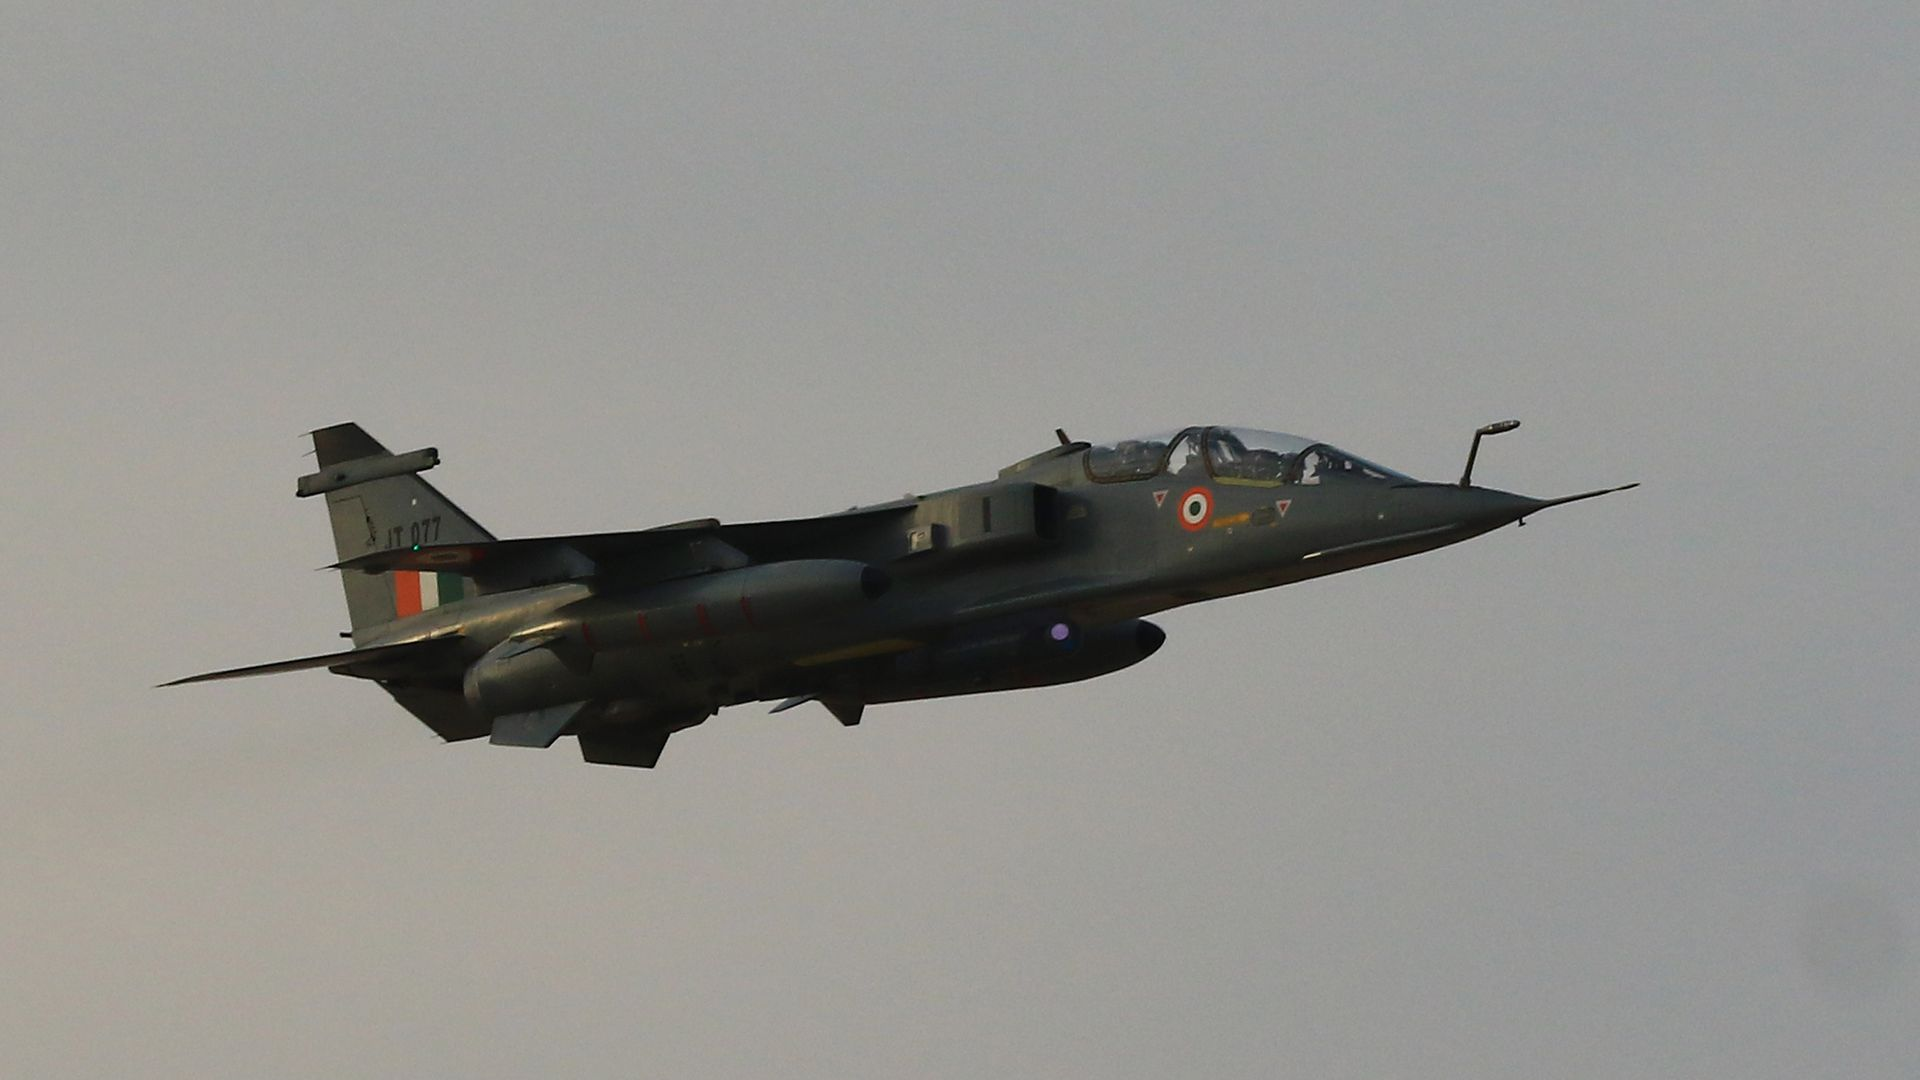 Pakistan says it has arrested a pilot after shooting down two Indian Air Force jets in its airspace in Kashmir.